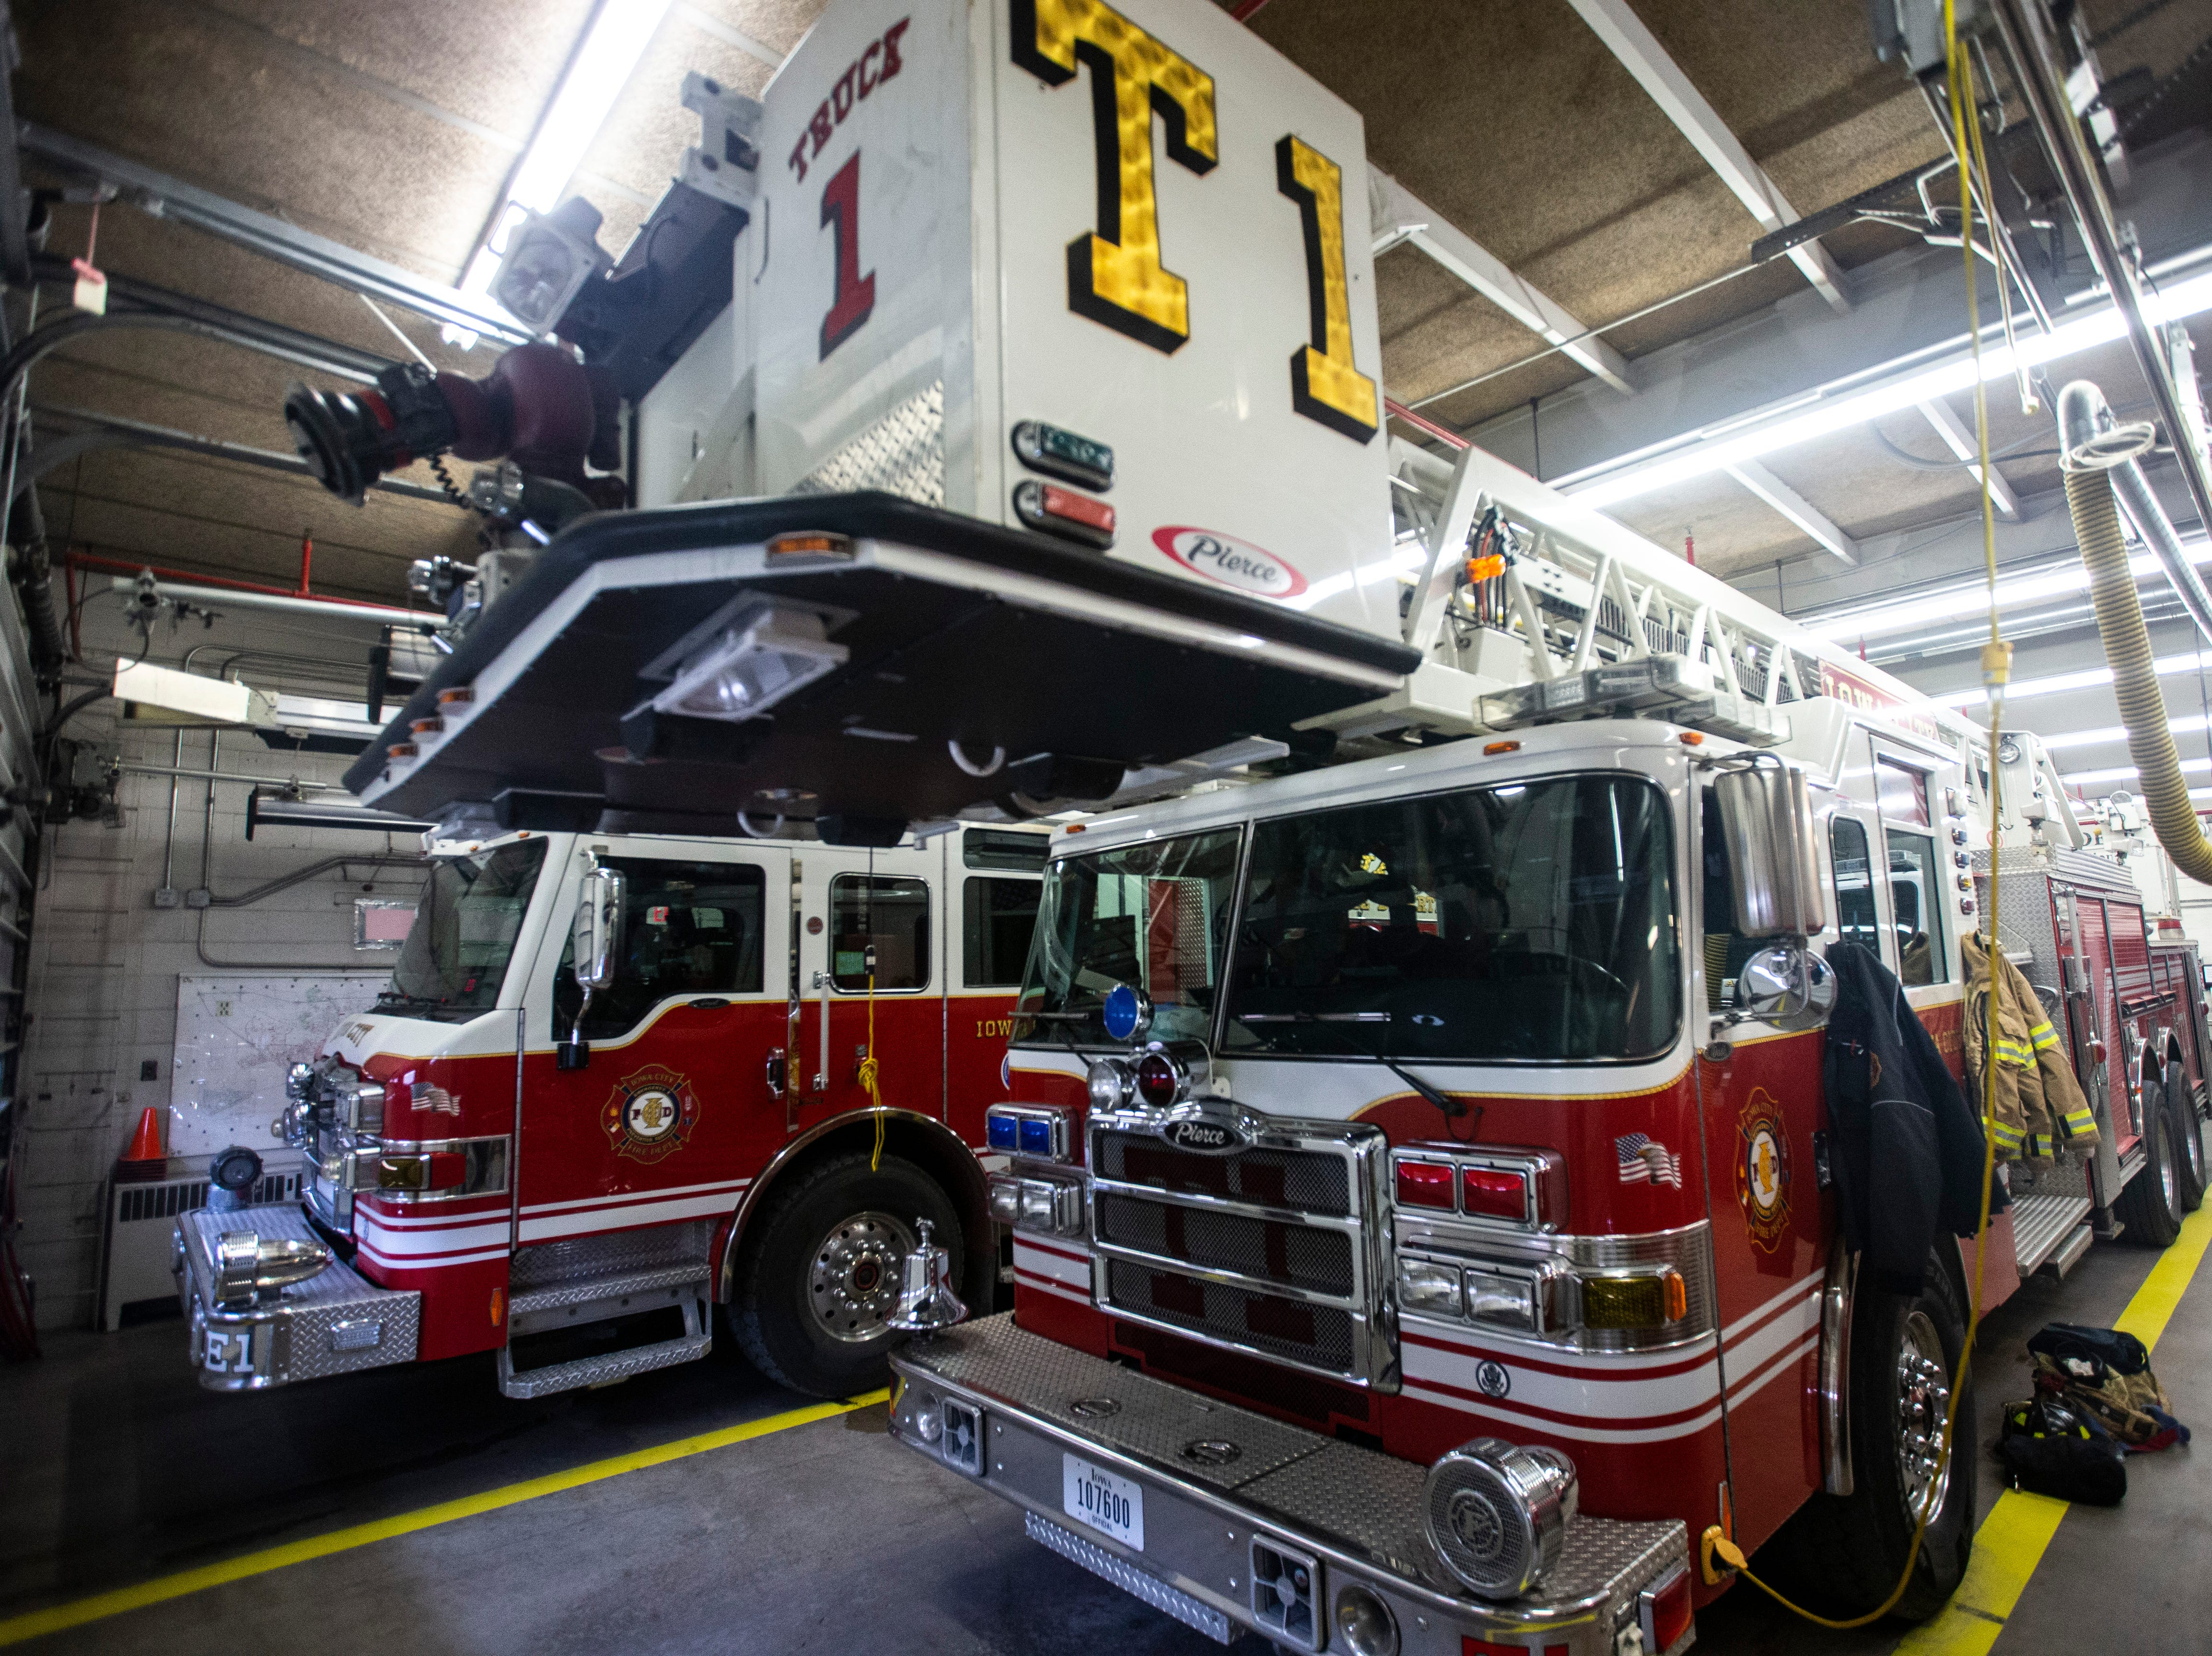 Truck 1, an Iowa City Fire Department 102-foot Gruman Aerial Cat platform ladder truck, sits in the garage on Thursday, March 7, 2019, inside Fire Station No. 1, at 10 South Gilbert Street in downtown Iowa City, Iowa.